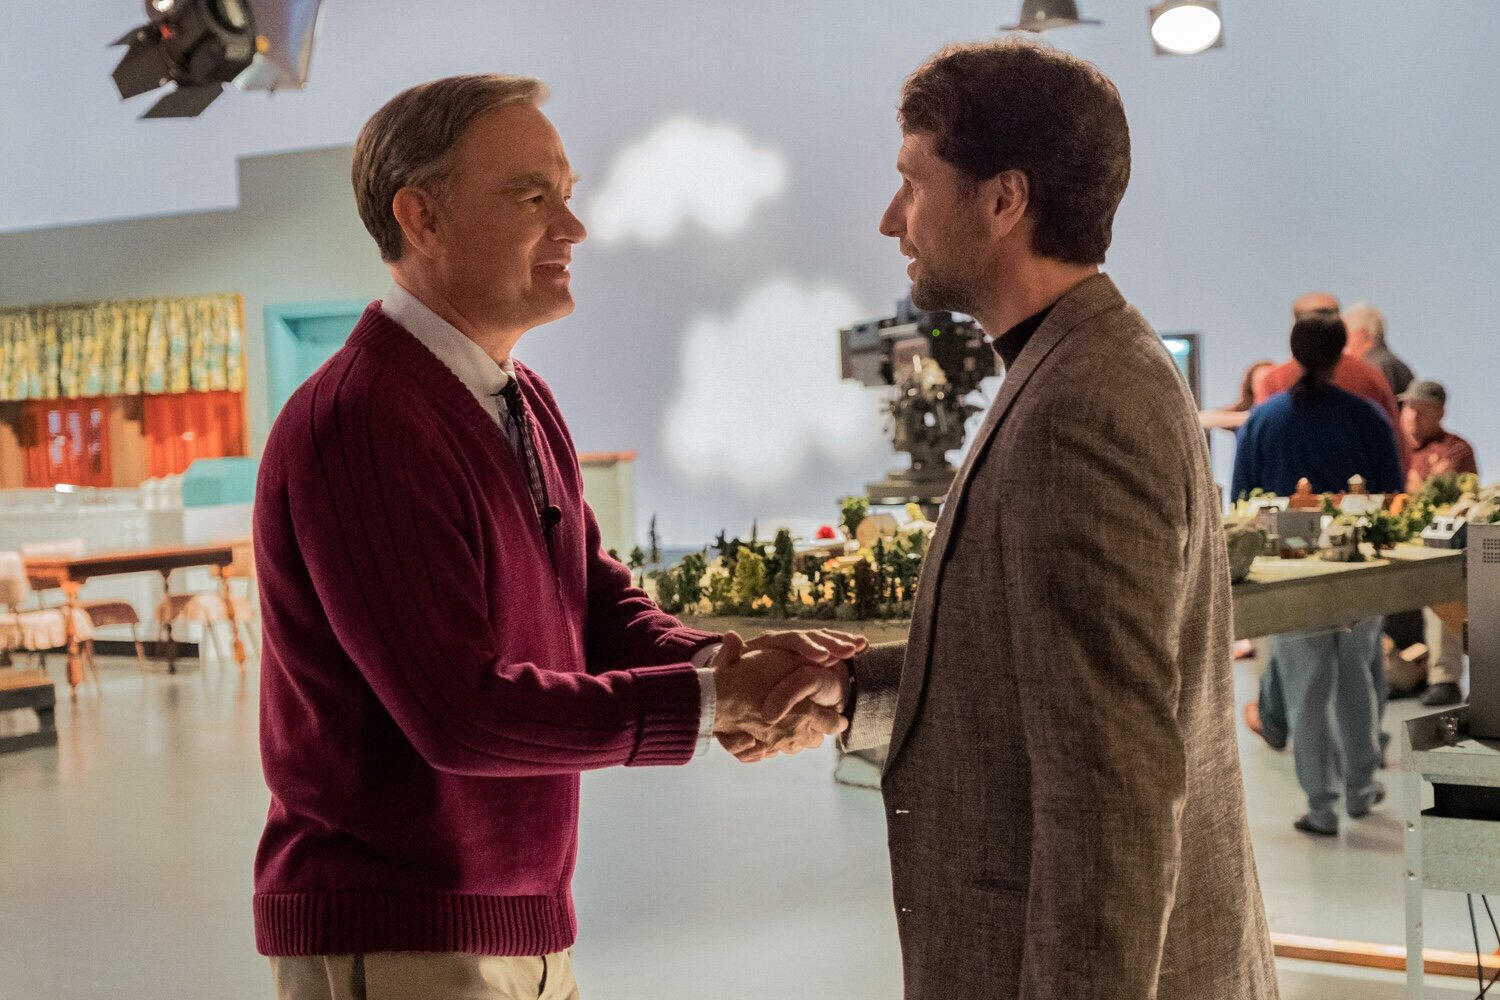 Glass half full meets Glass half empty when Rogers (Tom Hanks) meets Vogel (Matthew Rhys)